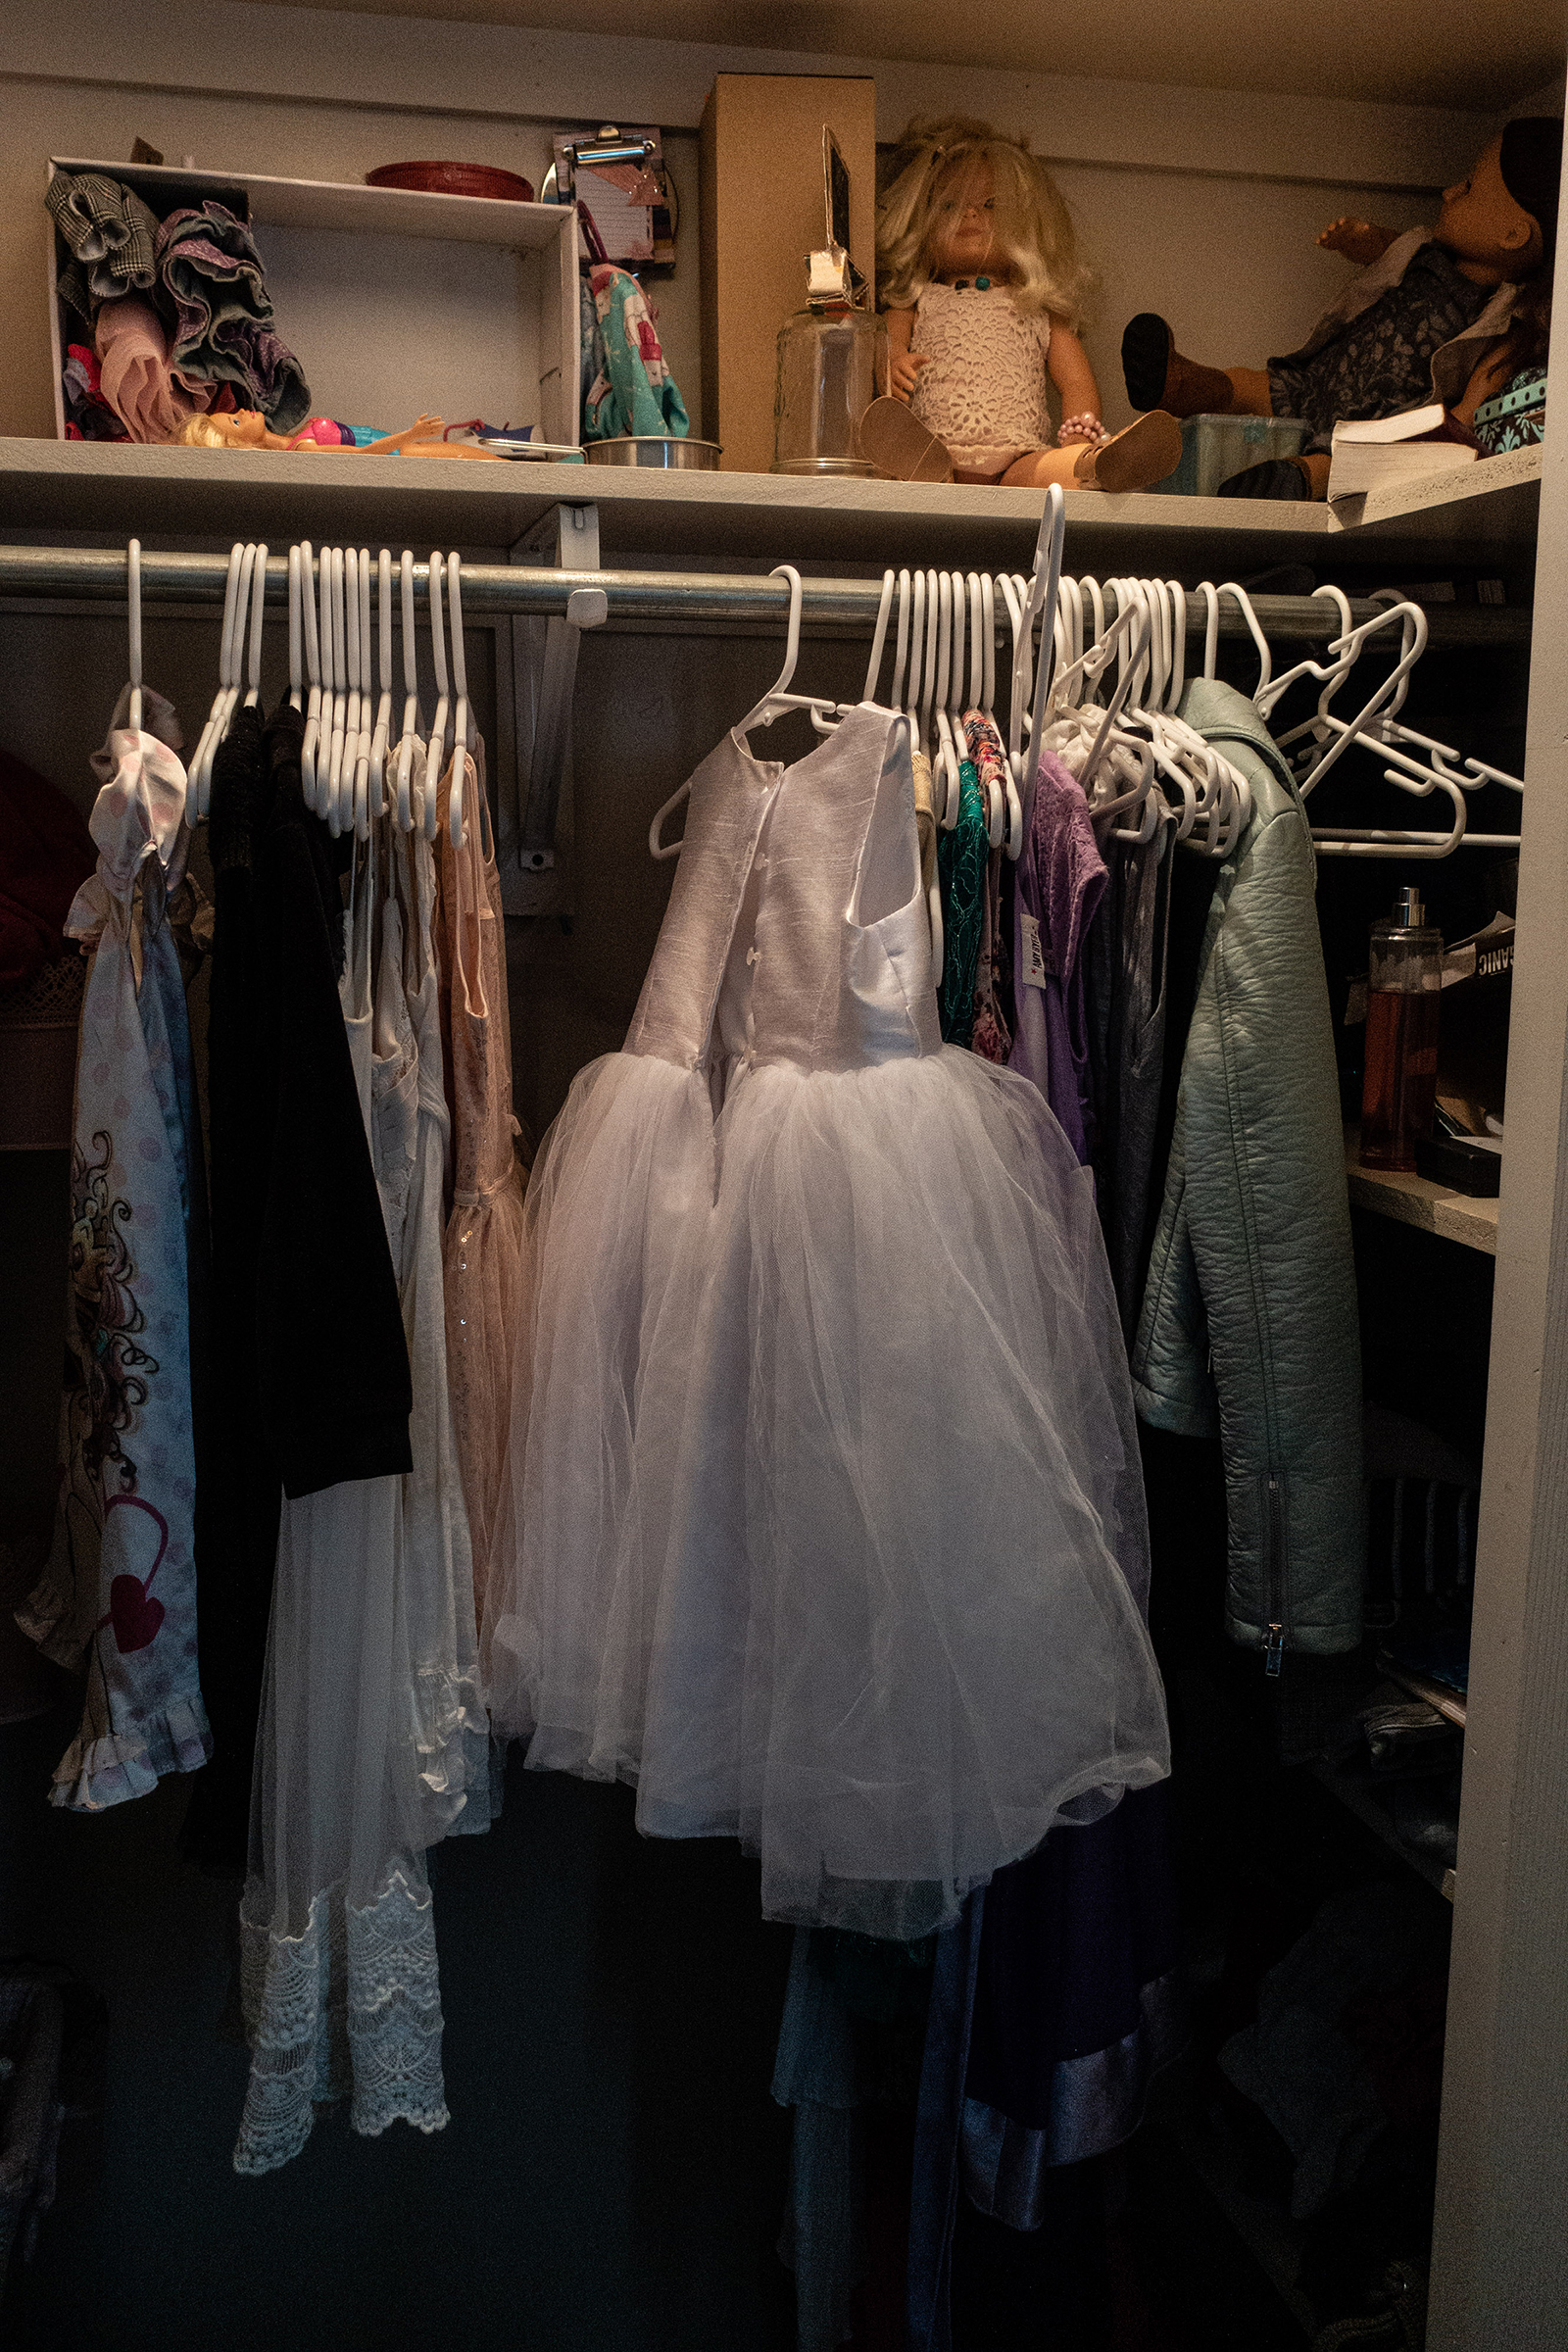 A dress belonging to Krystal Miller hangs in a closet.